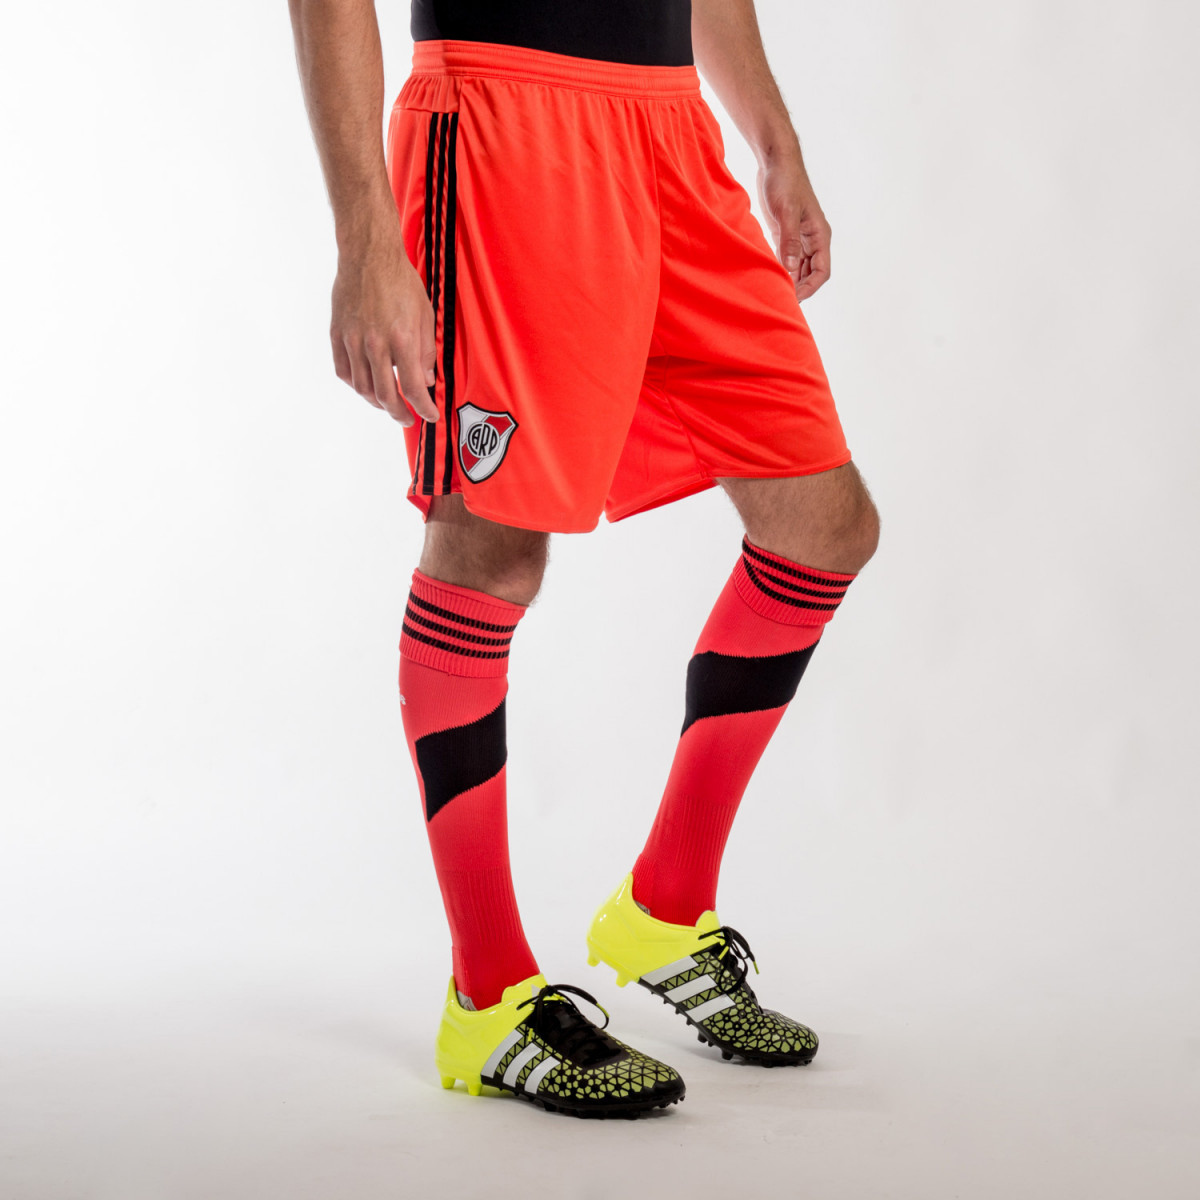 SHORT ADIDAS RIVER PLATE 2015/16